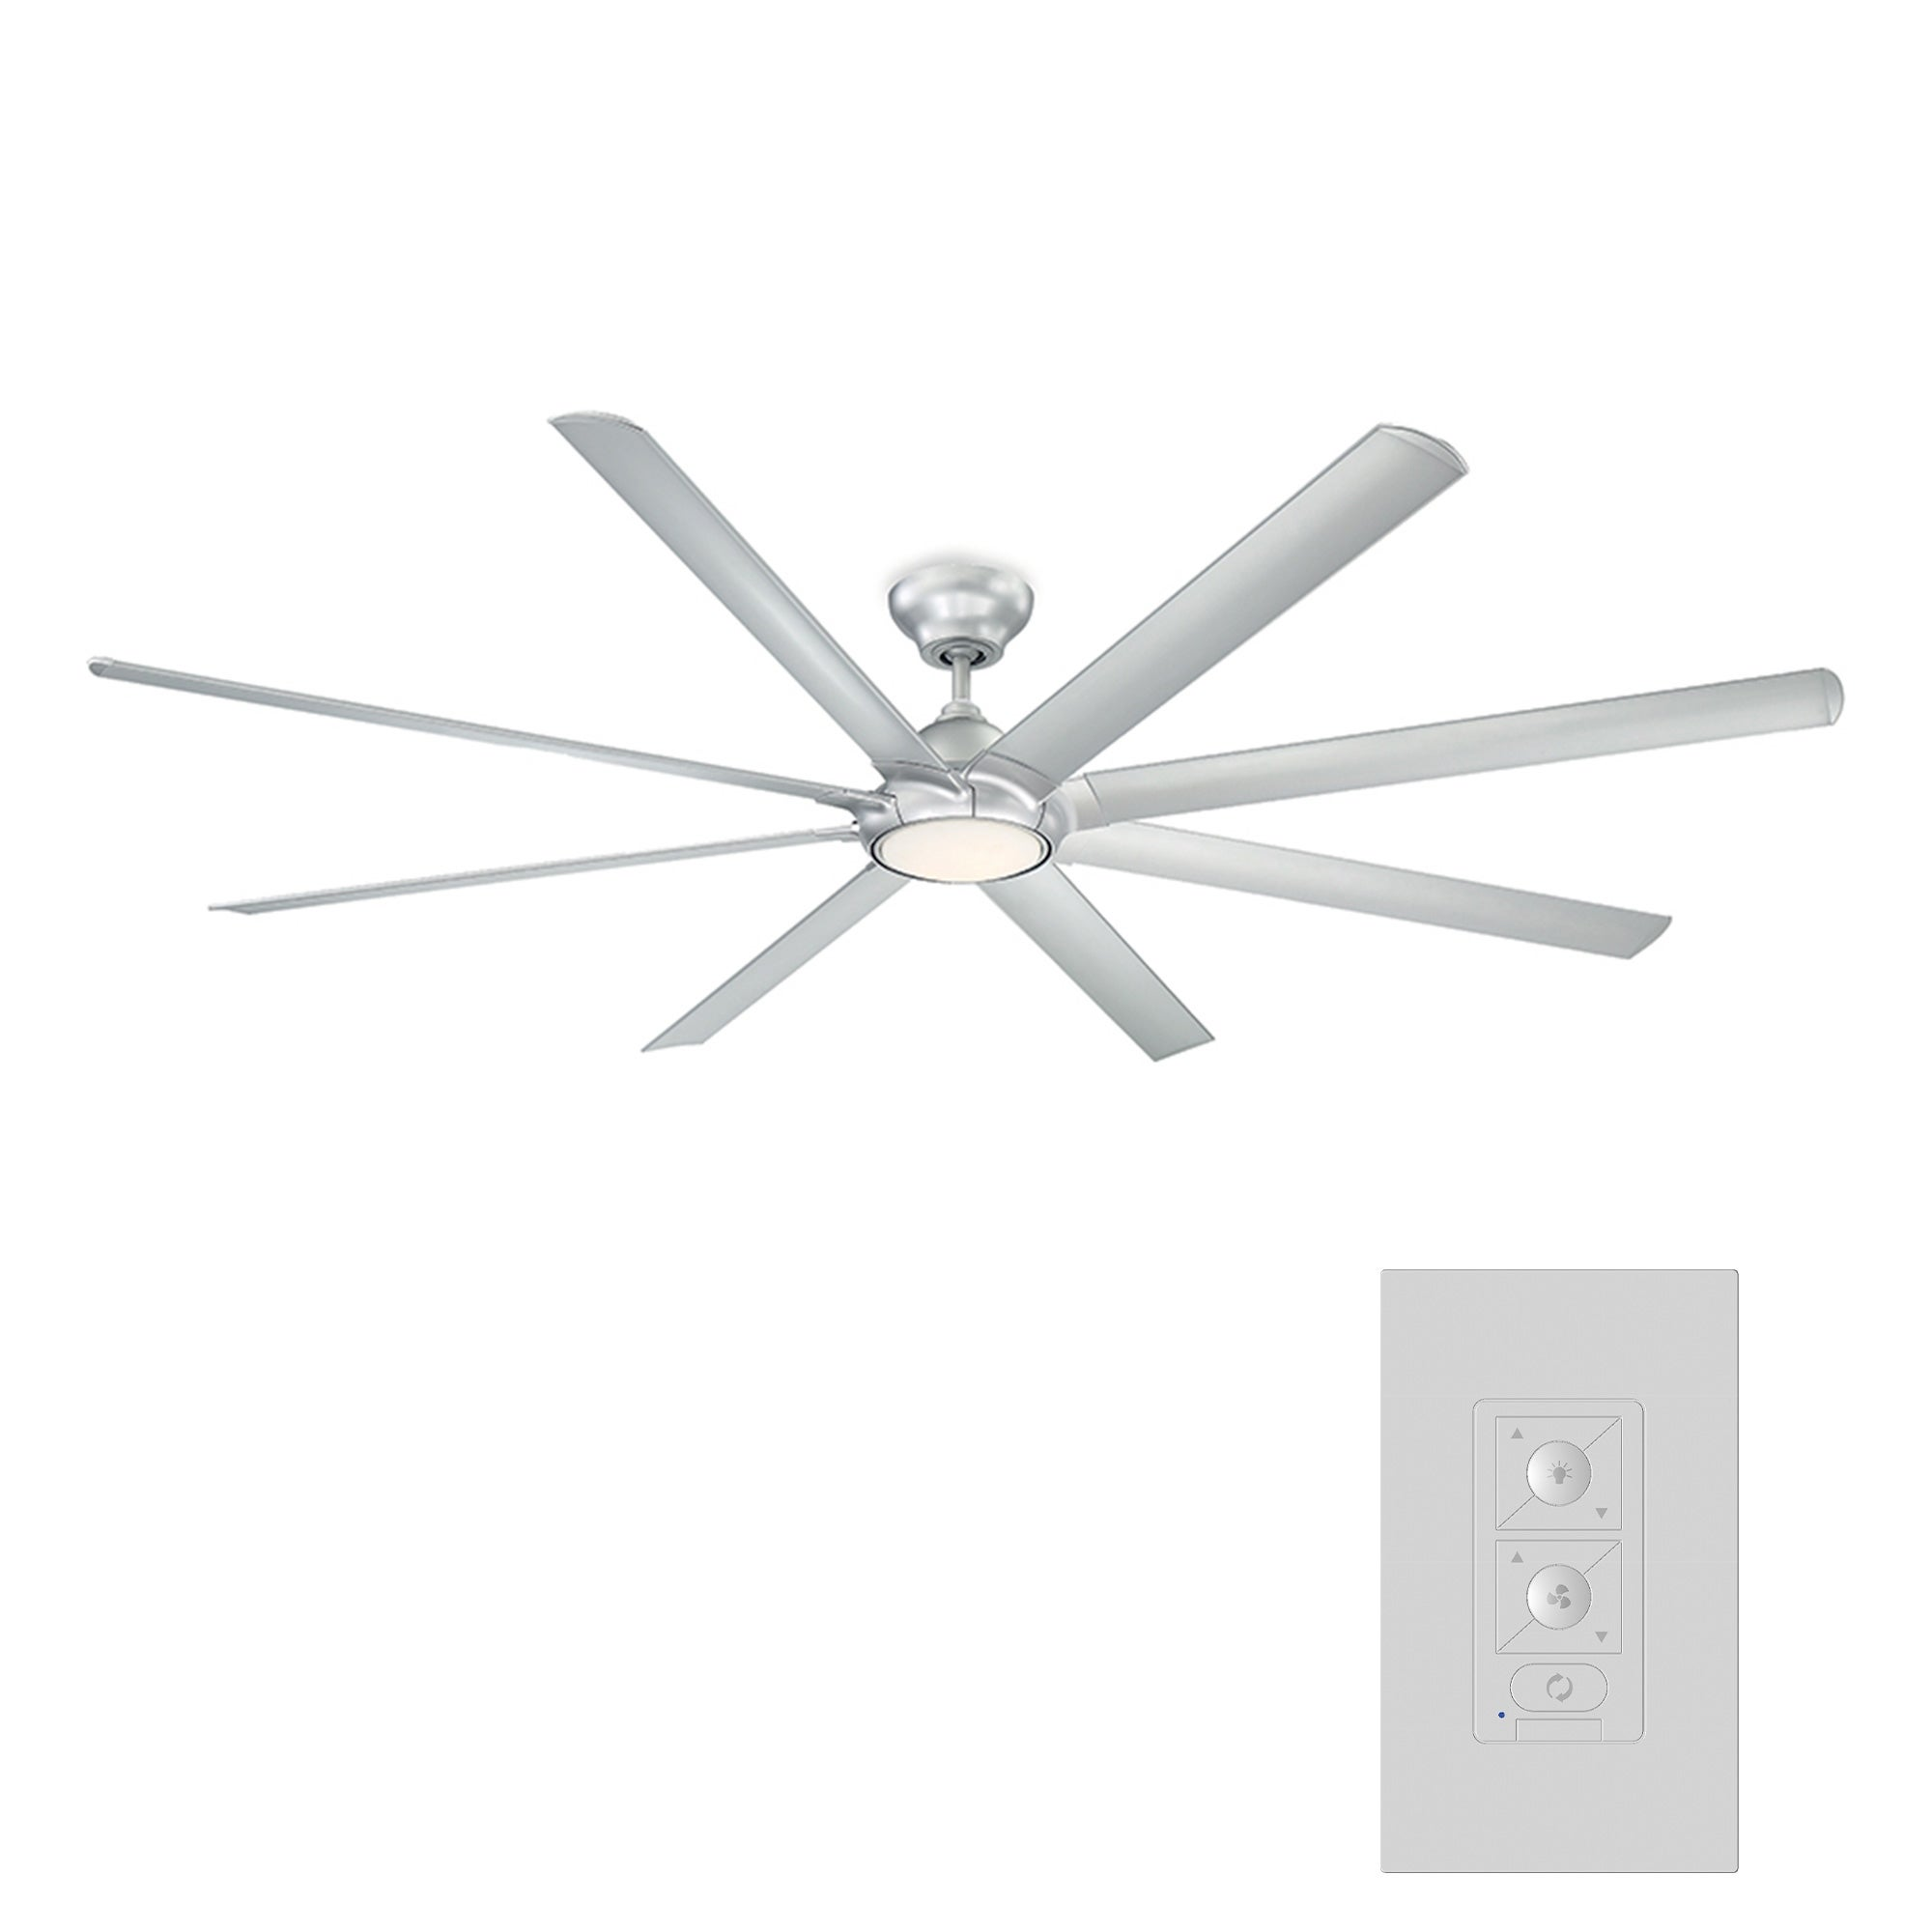 Hydra 96 Inch Eight Blade Indoor Outdoor Smart Ceiling Fan With Six Speed Dc Motor And Led Light Overstock 25737940 Bronze